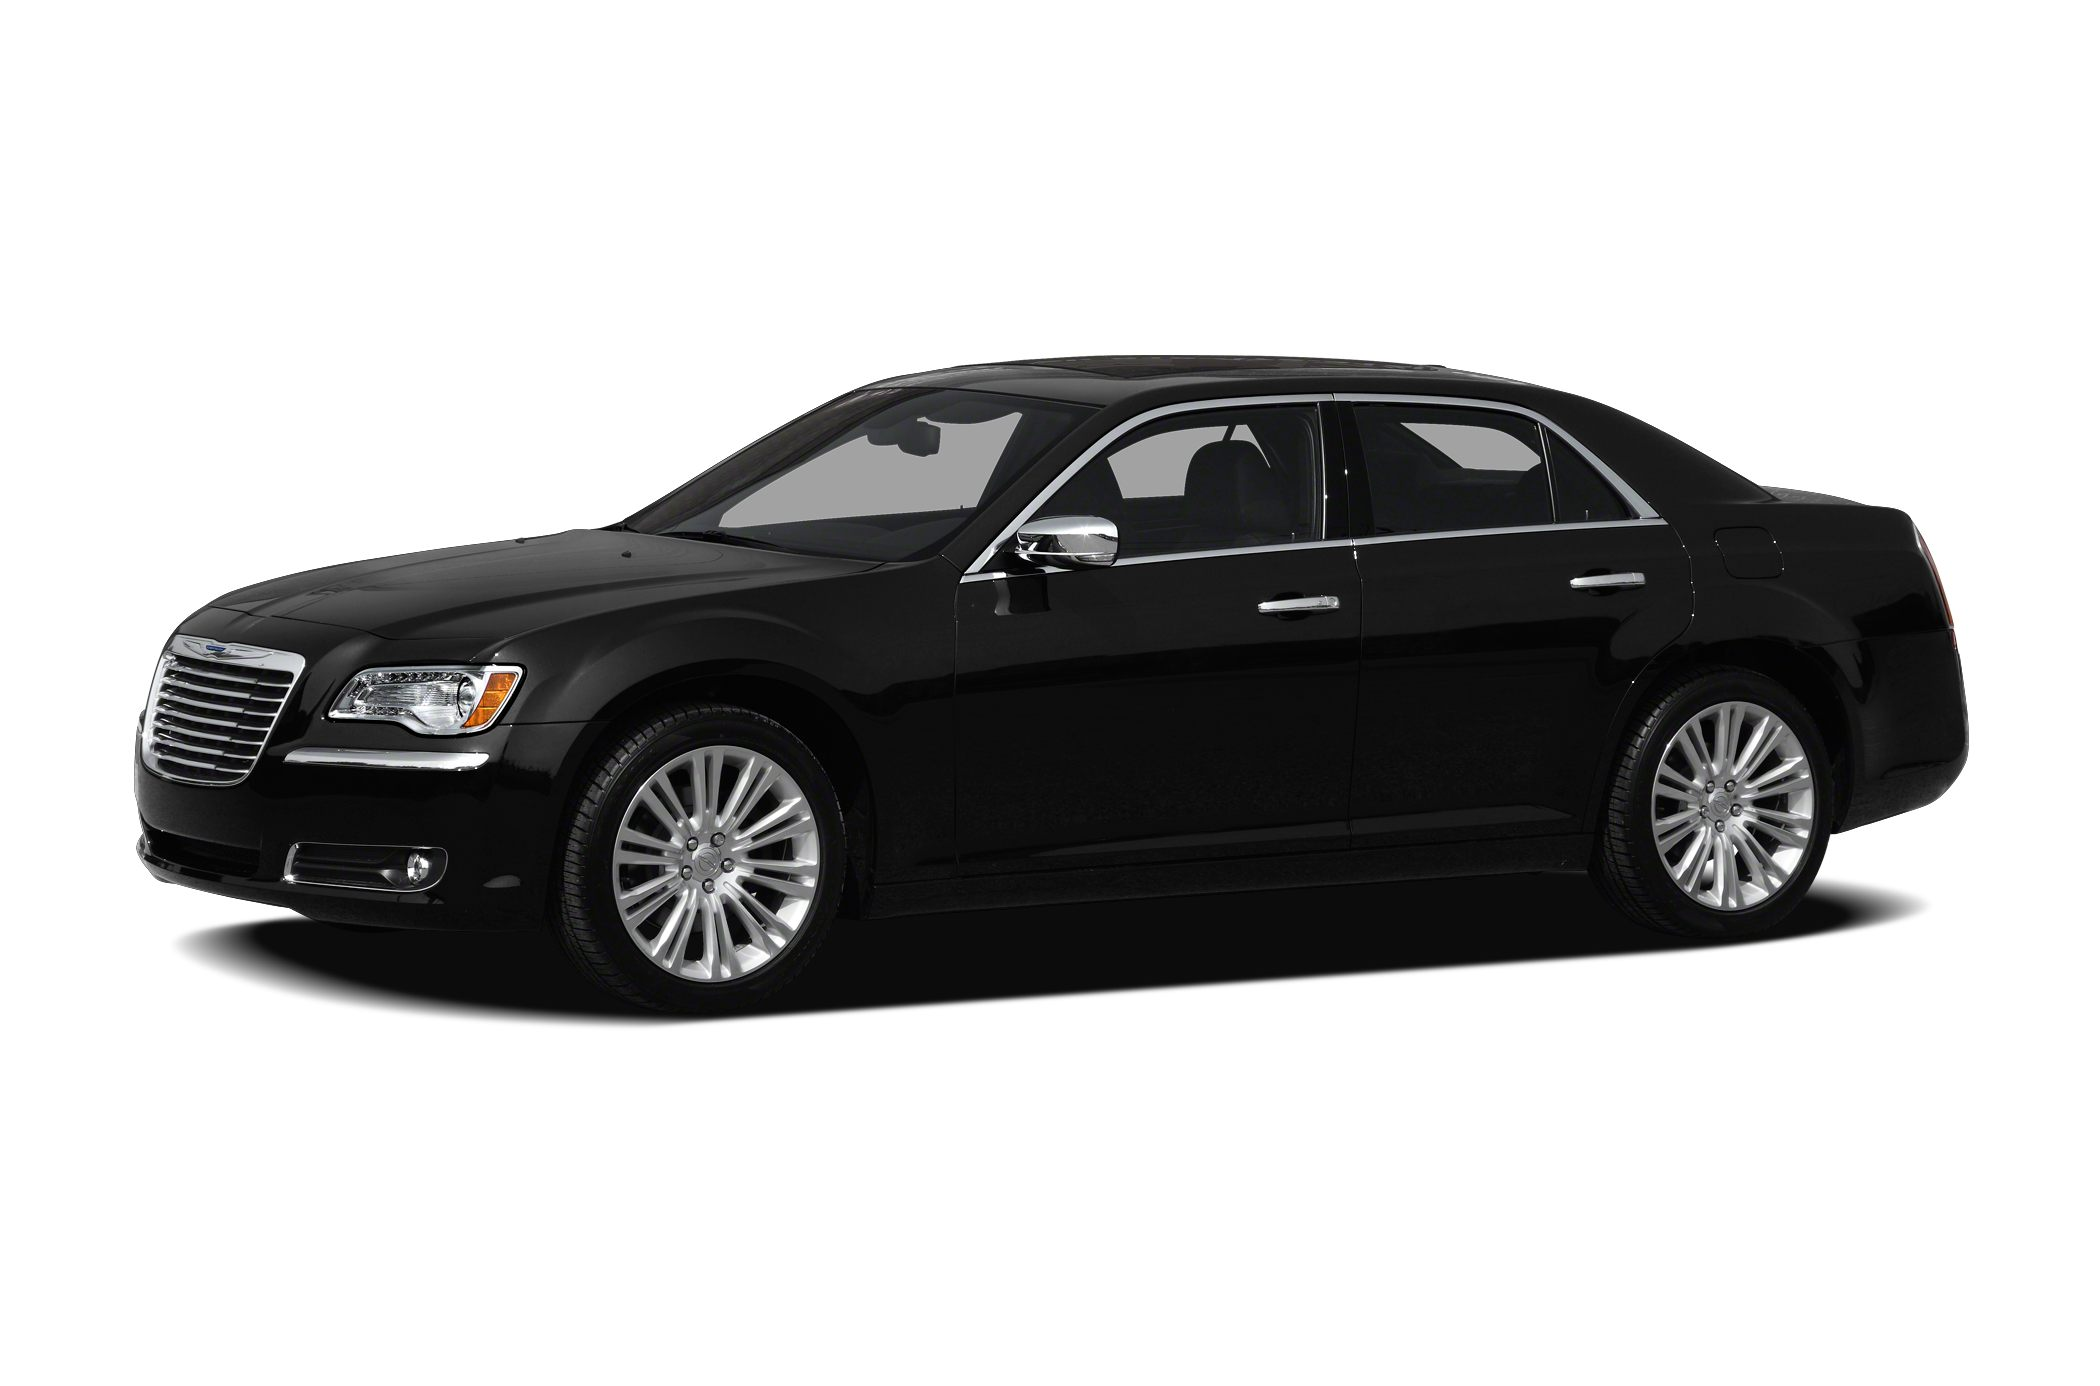 2012 Chrysler 300 Base Sedan for sale in Alexandria for $16,778 with 45,846 miles